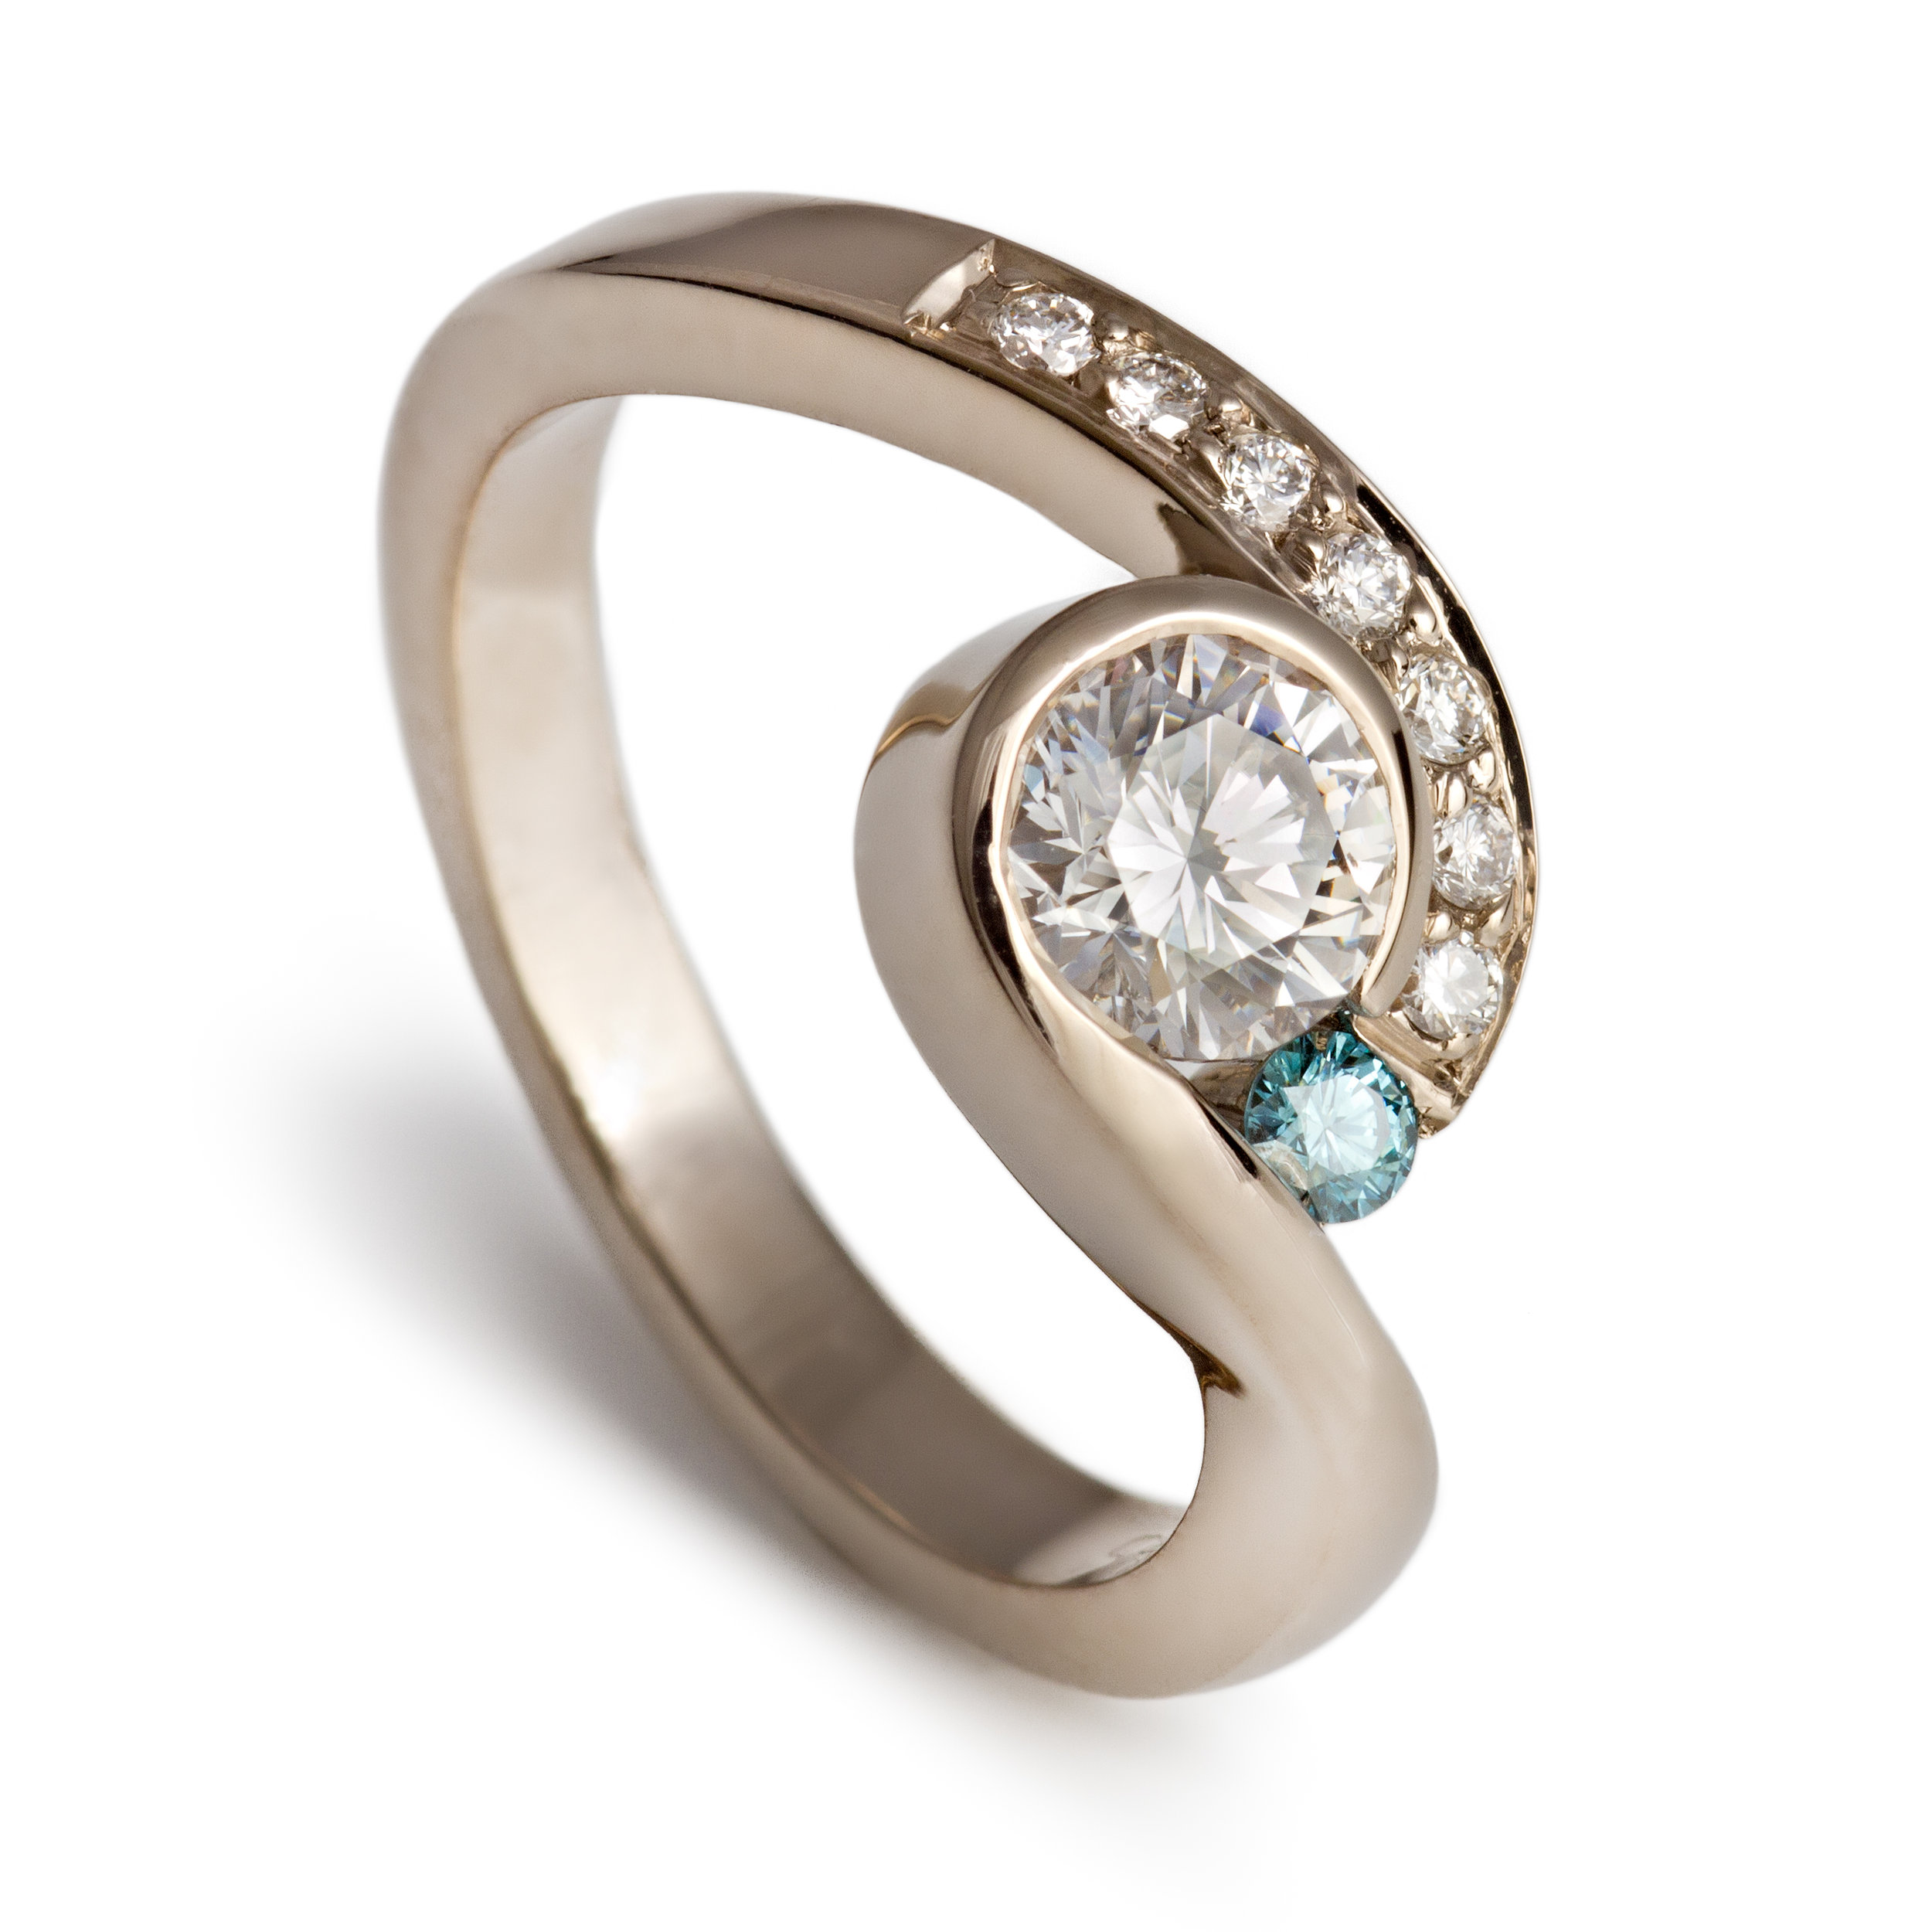 18ct white gold engagement ring set with one central round brilliant cut diamond, one treated blue diamond and seven round brilliant cut diamonds - £4,975